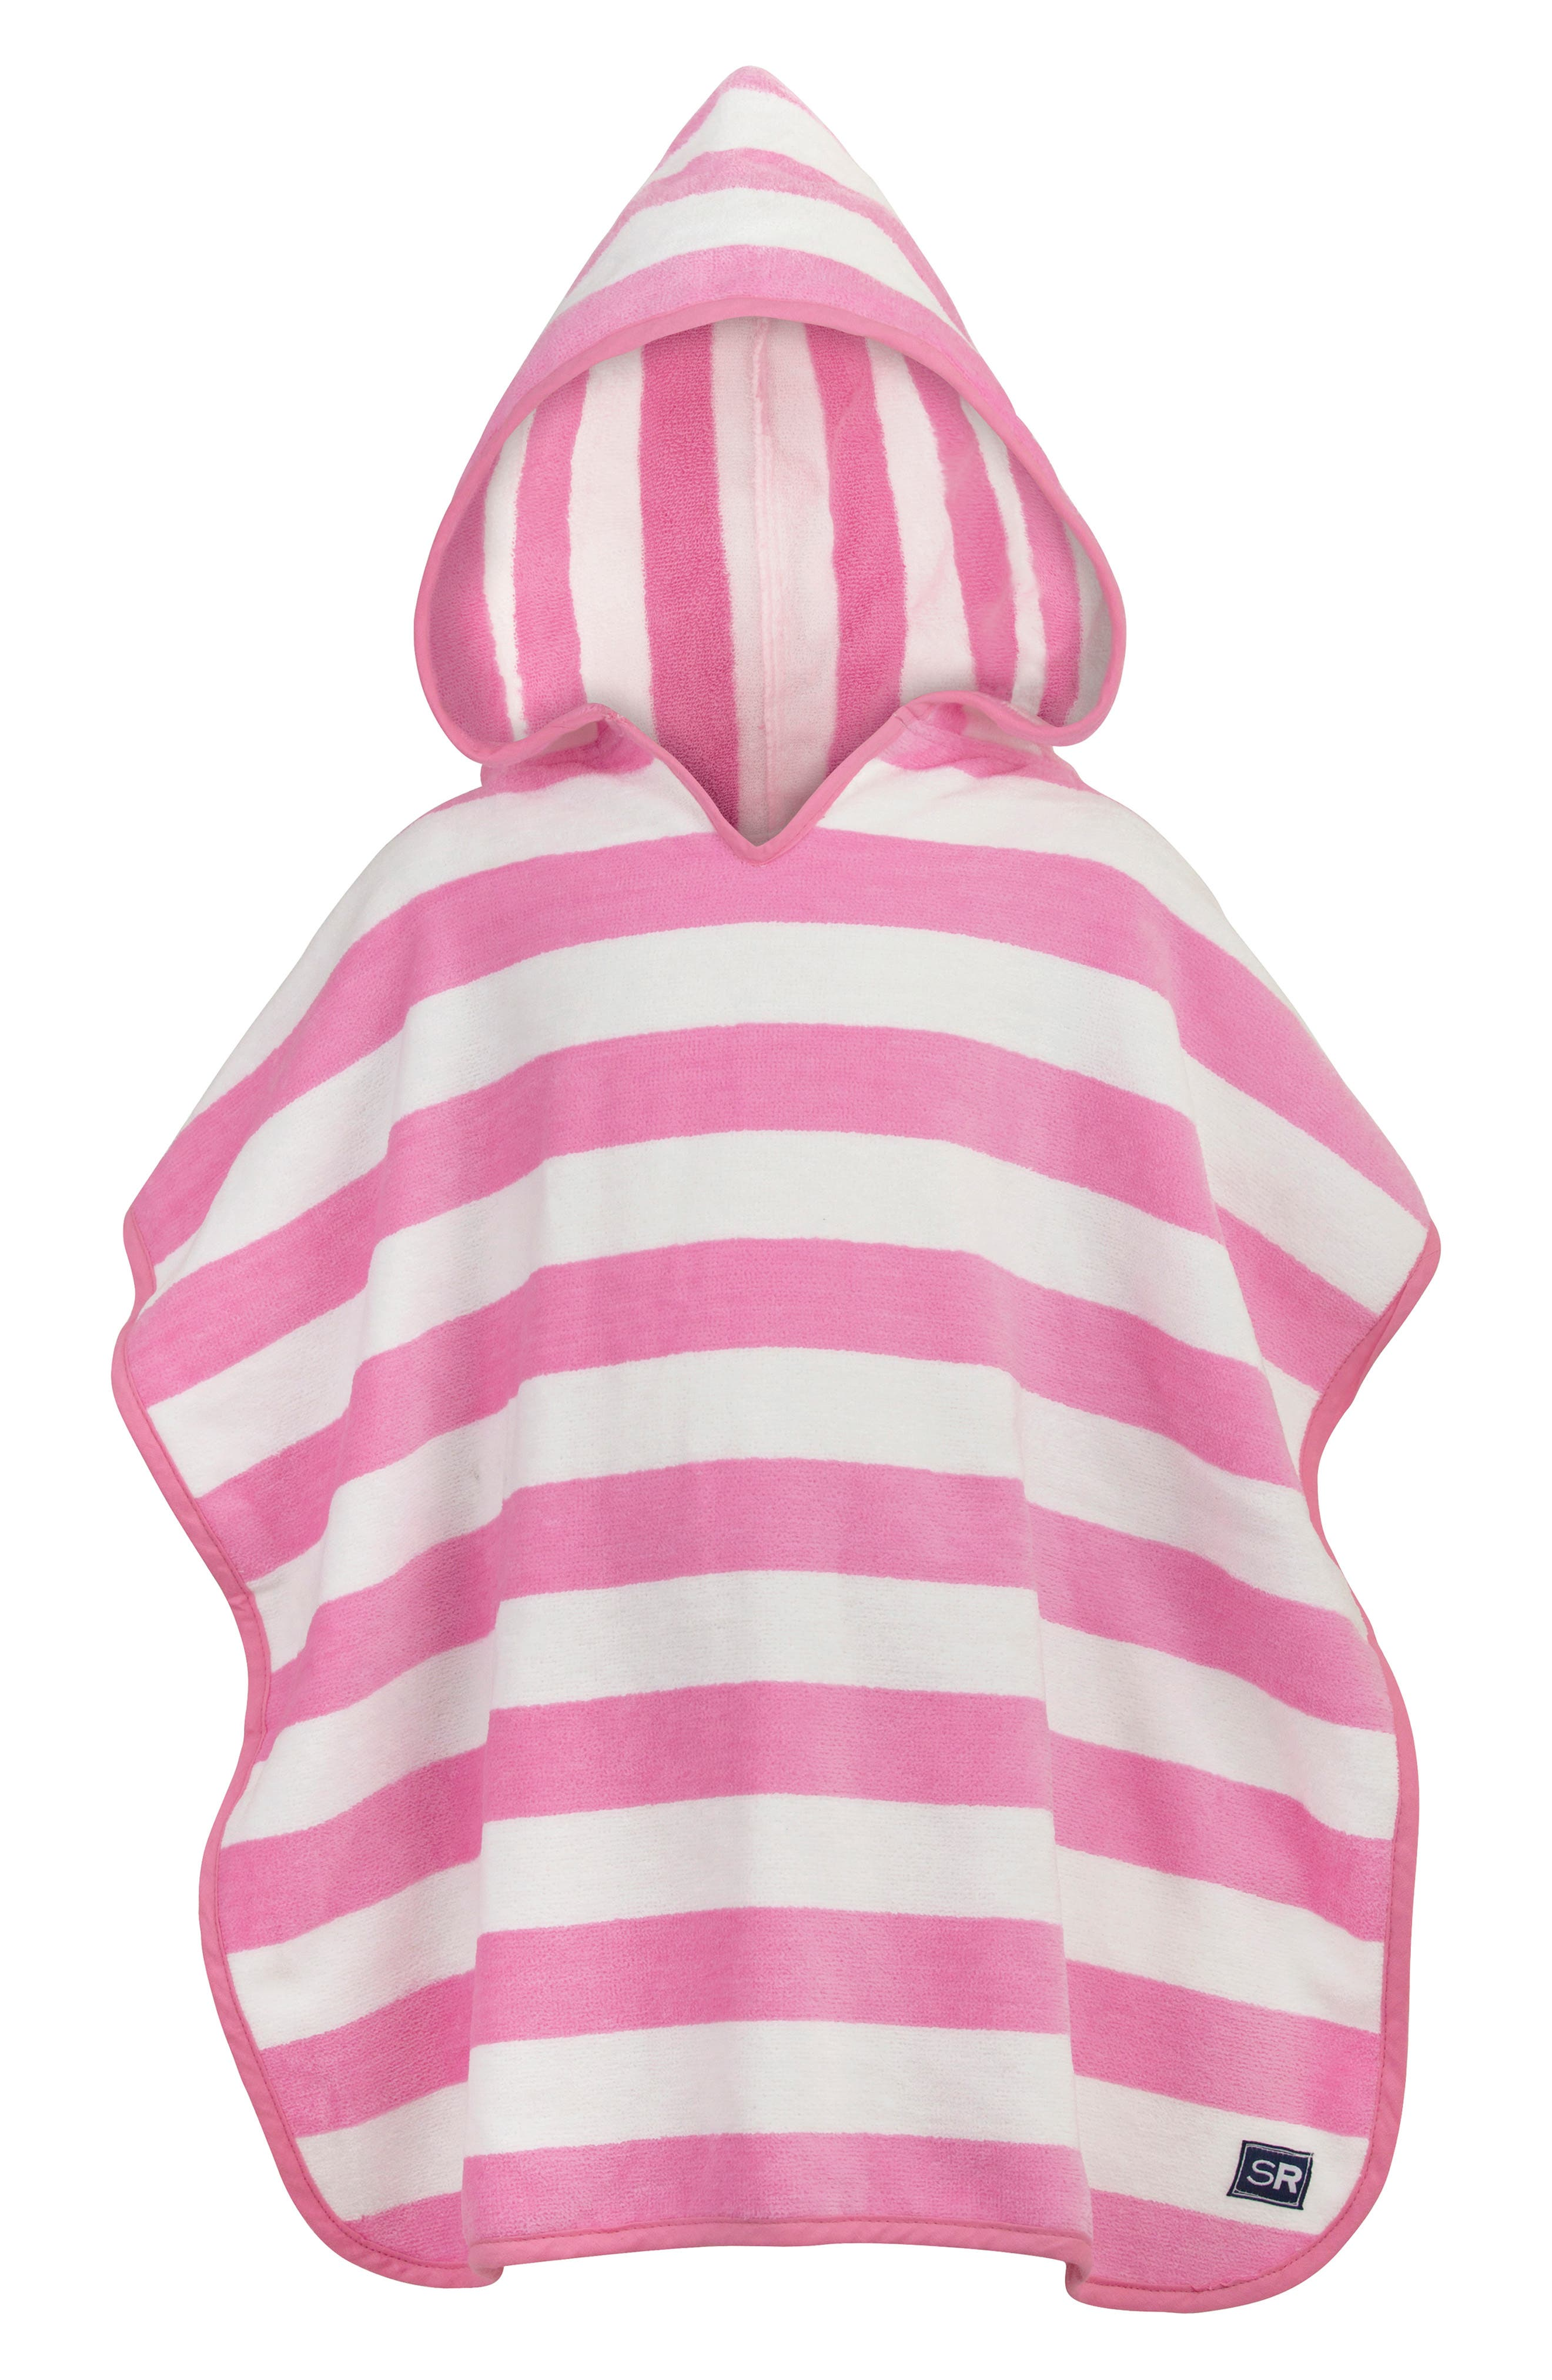 Pink Striped Hooded Towel,                             Main thumbnail 1, color,                             PINK WHITE STRIPE